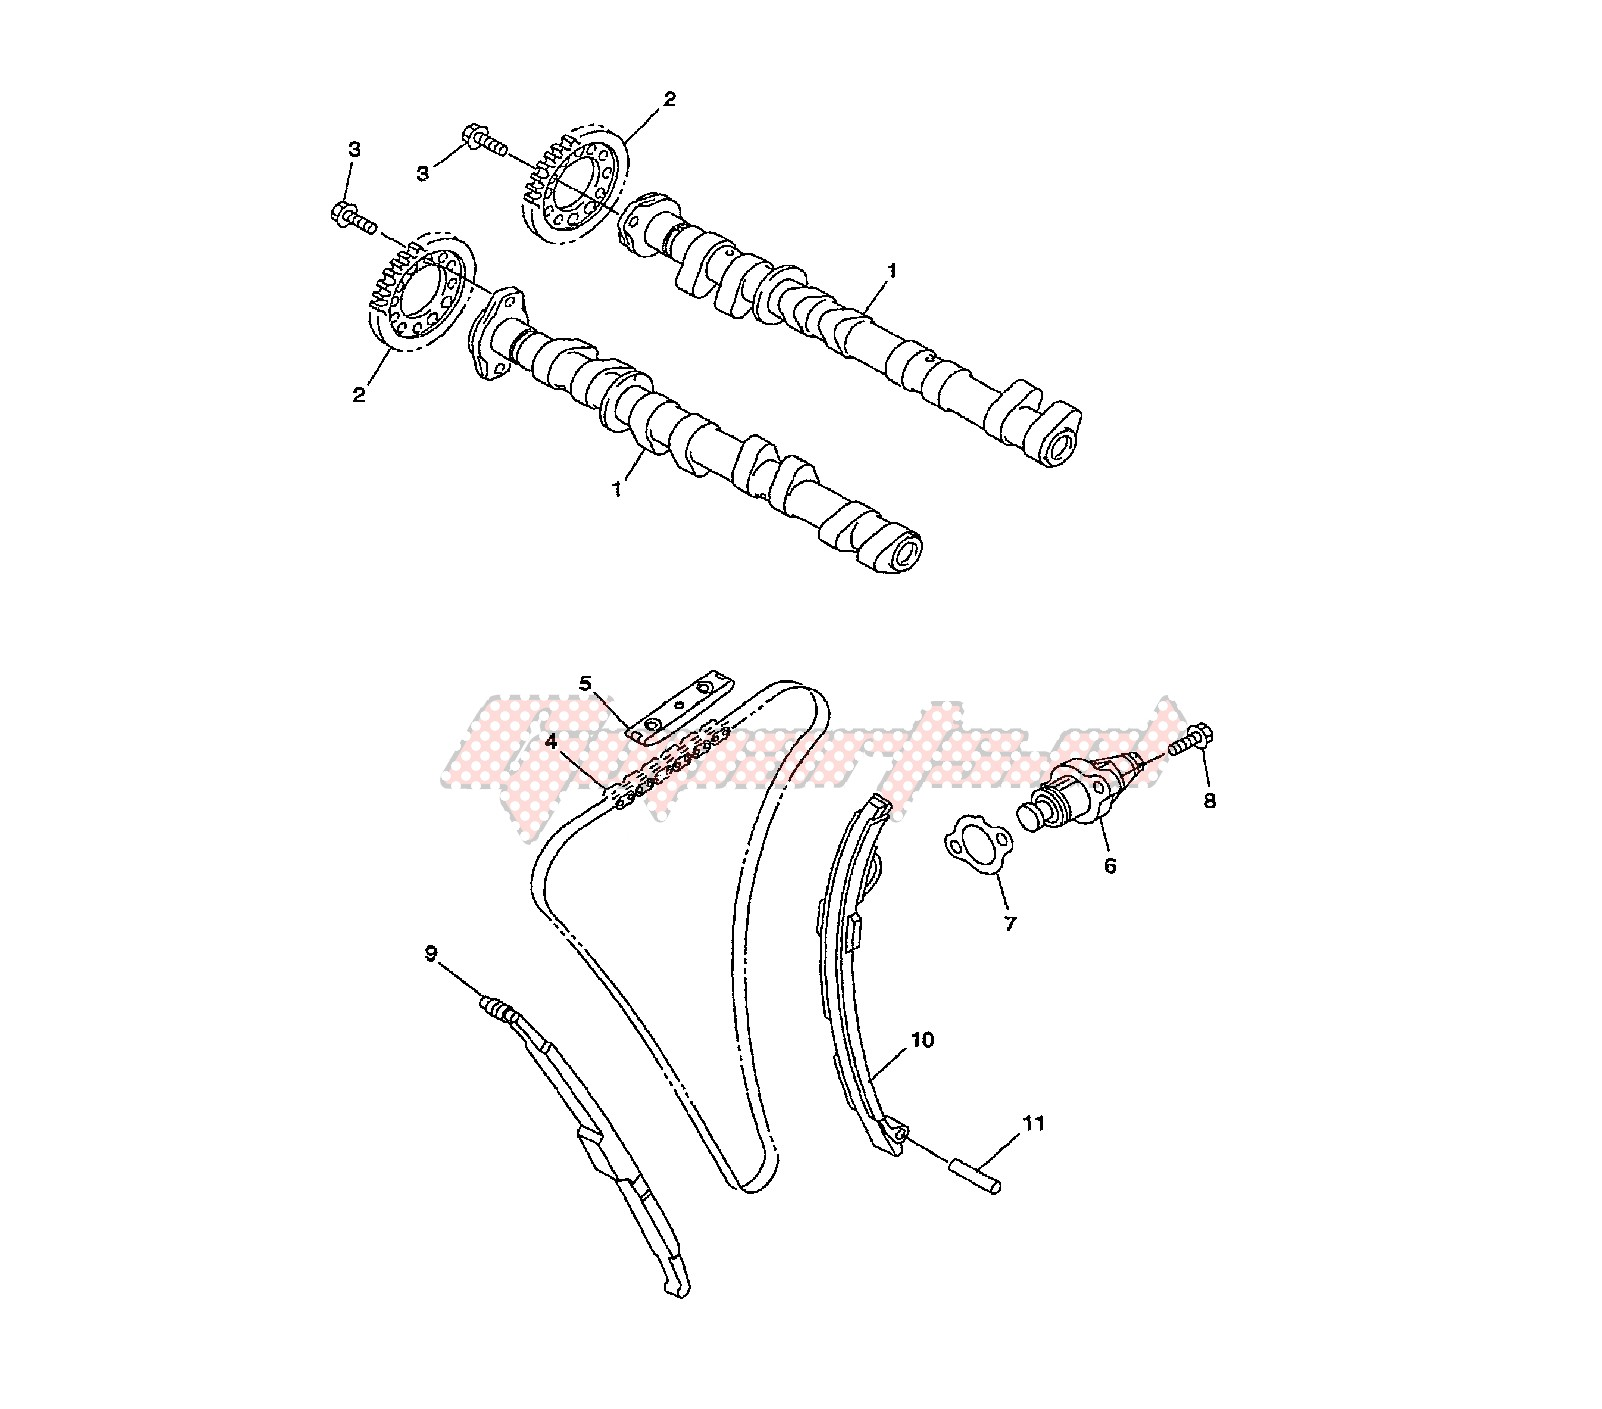 CAMSHAFT AND TIMING CHAIN blueprint